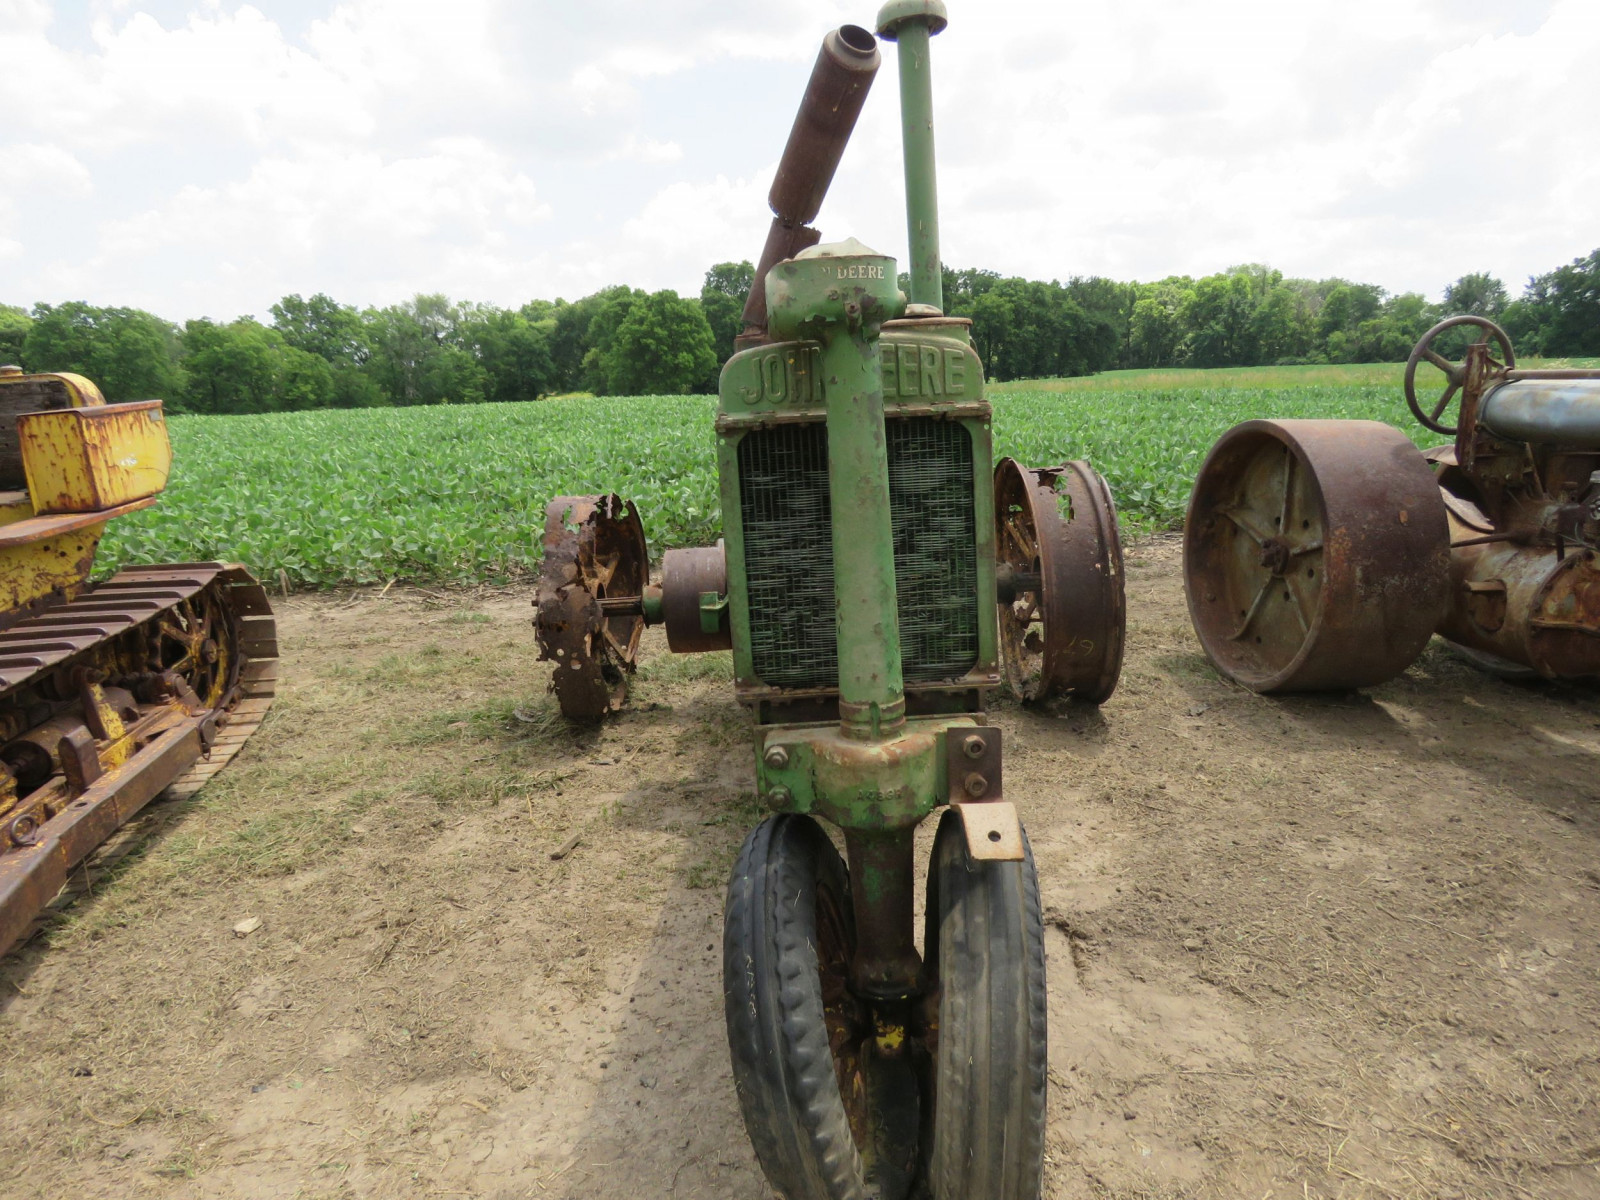 1936 John Deere Unstyled A Tractor - Image 2